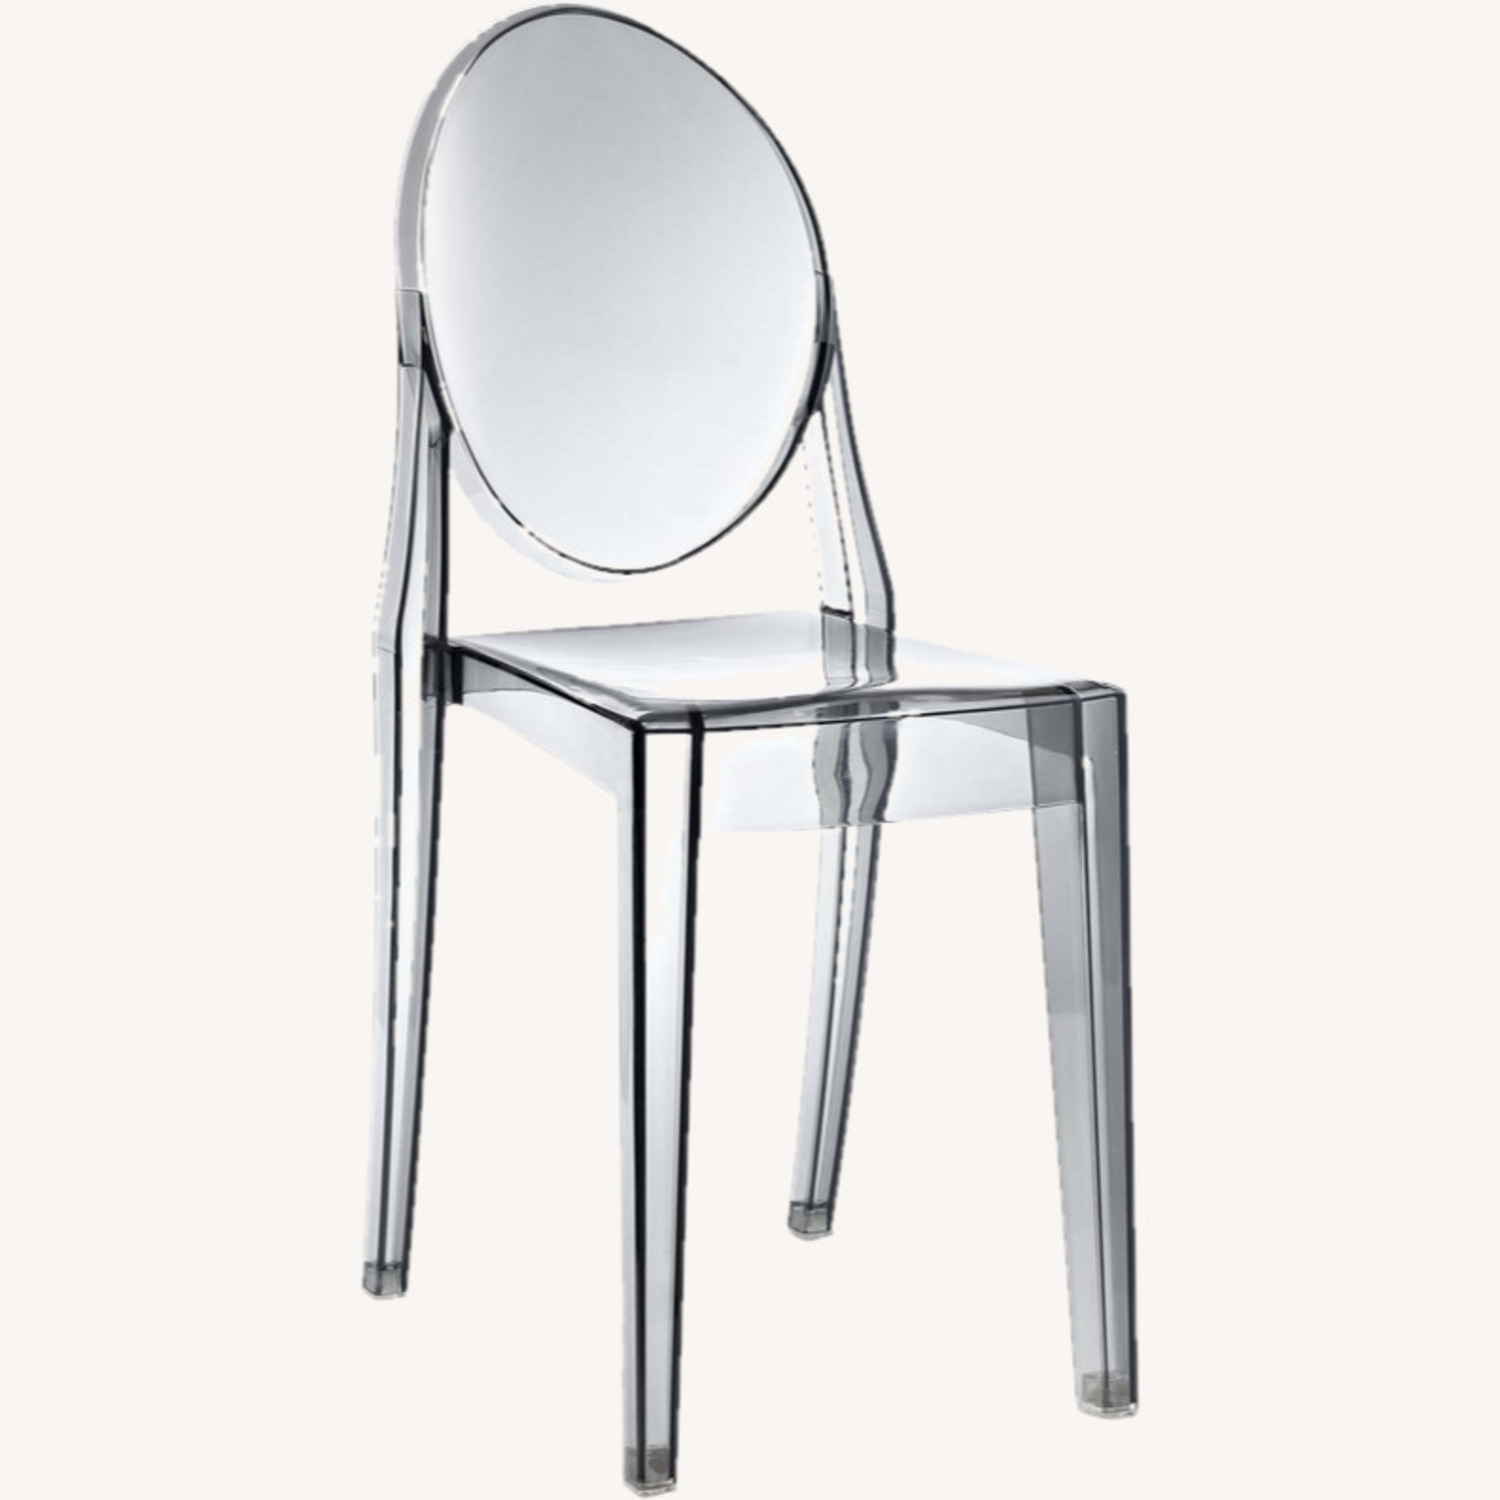 Modway Casper Ghost Dining Chair in Smoke (Set of 4) - image-3